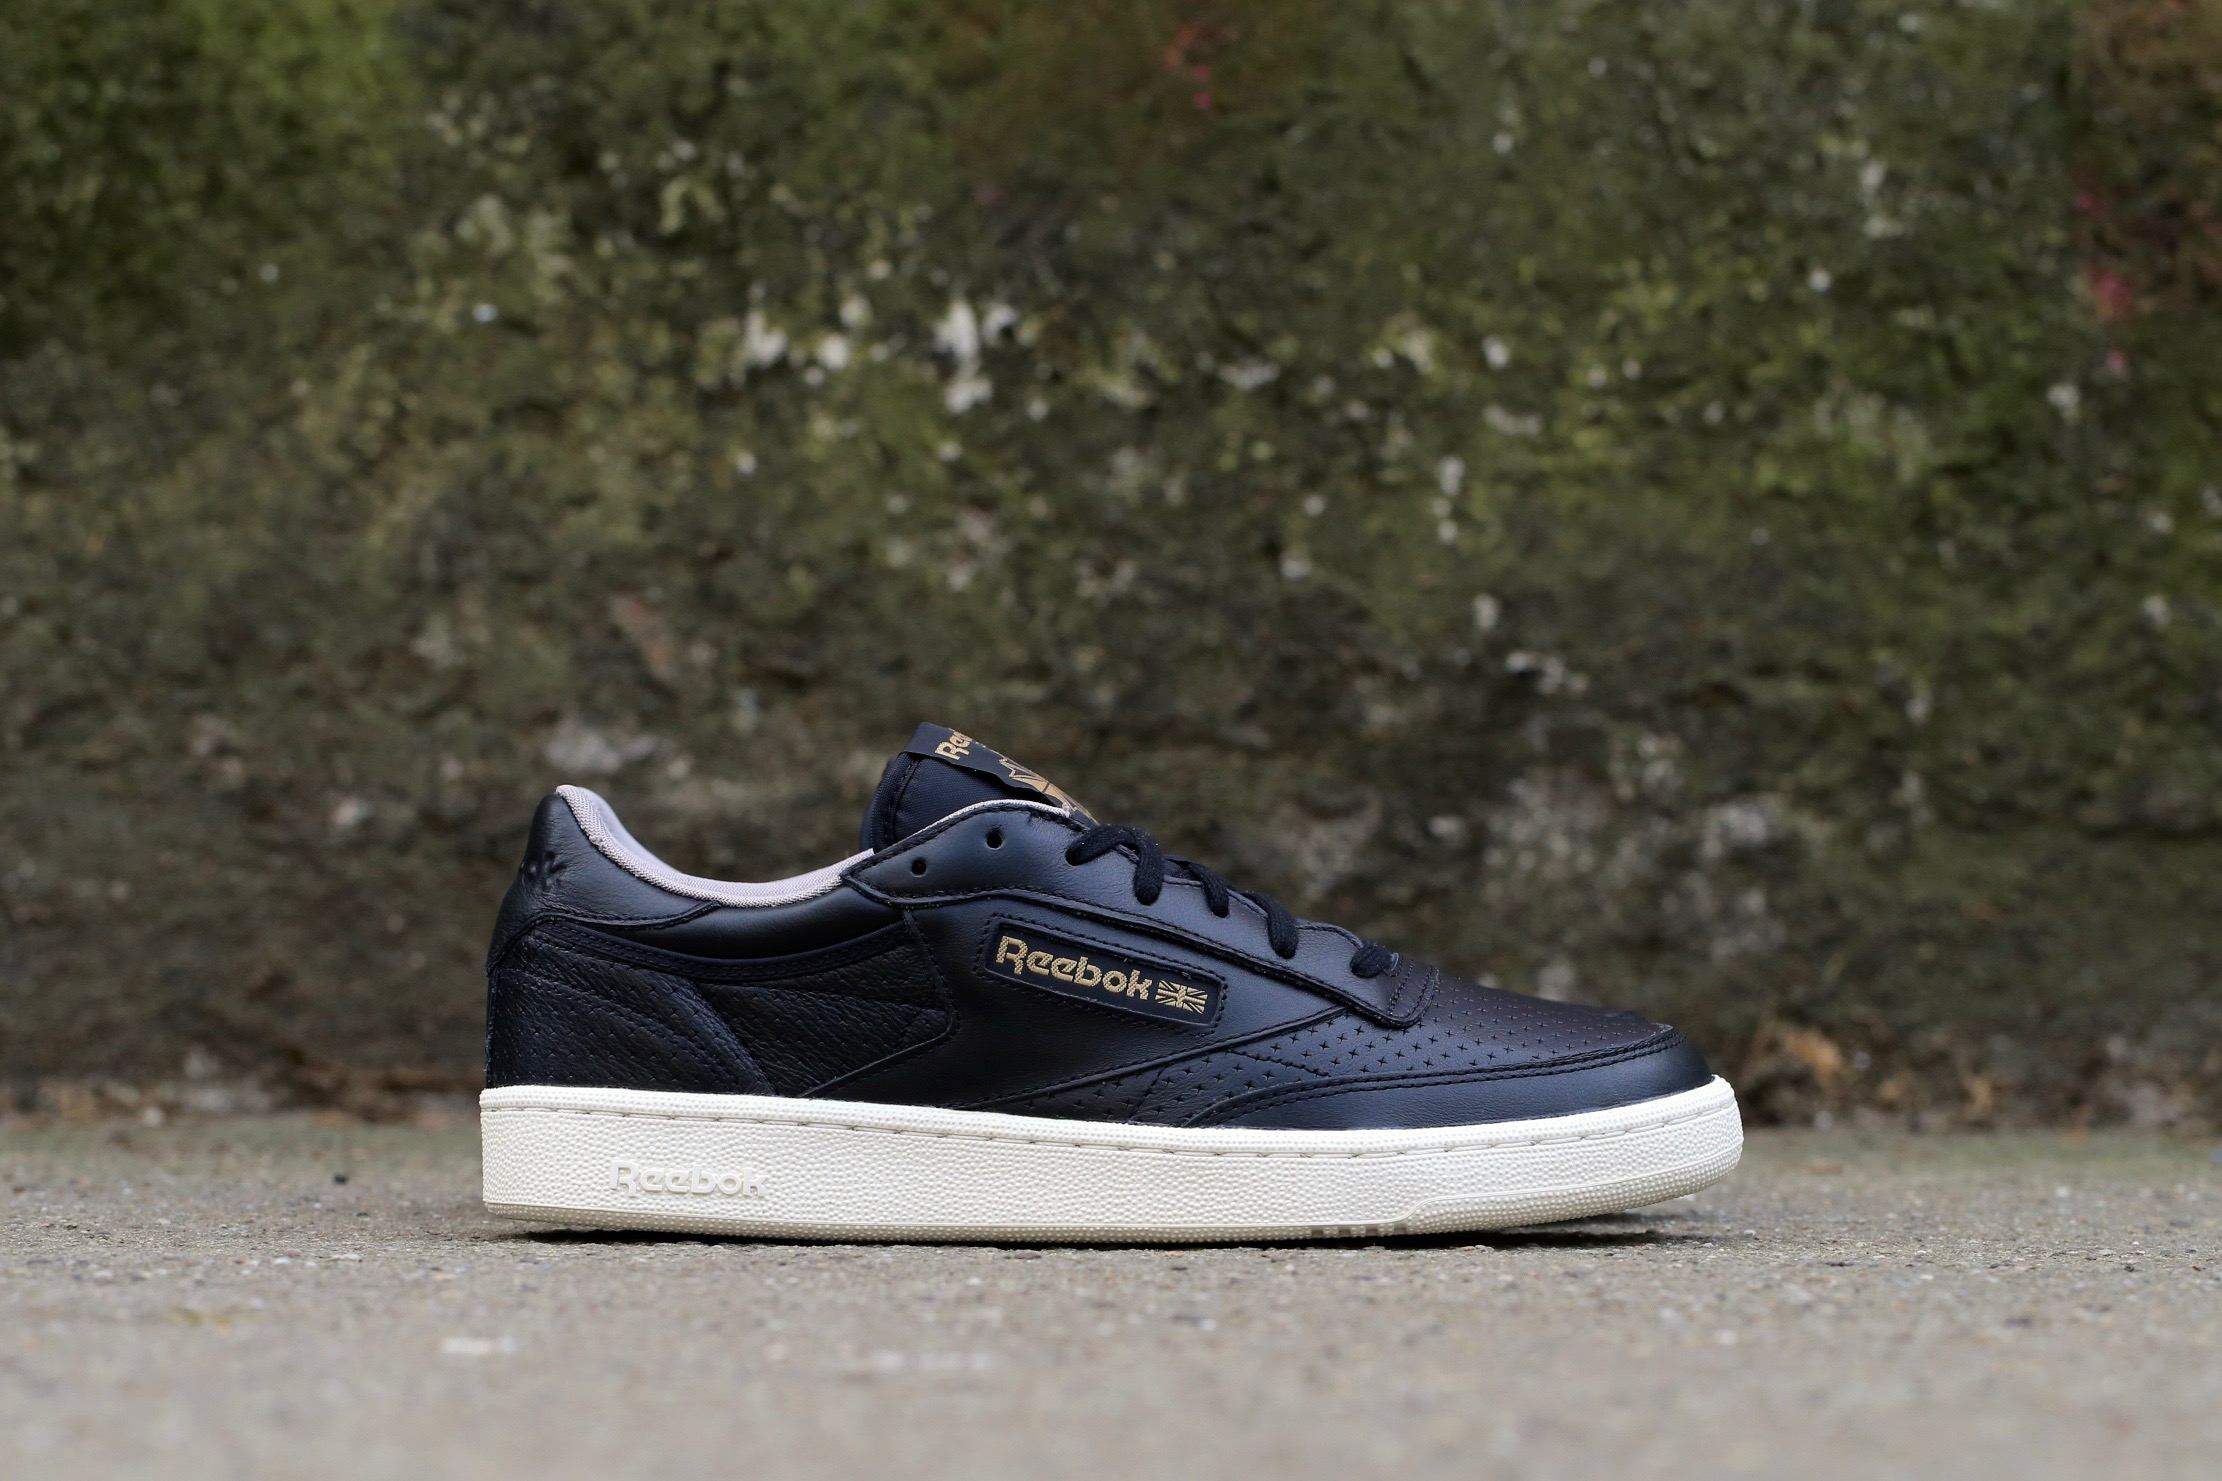 reebok club c black cheap   OFF70% The Largest Catalog Discounts 9eccc9a636